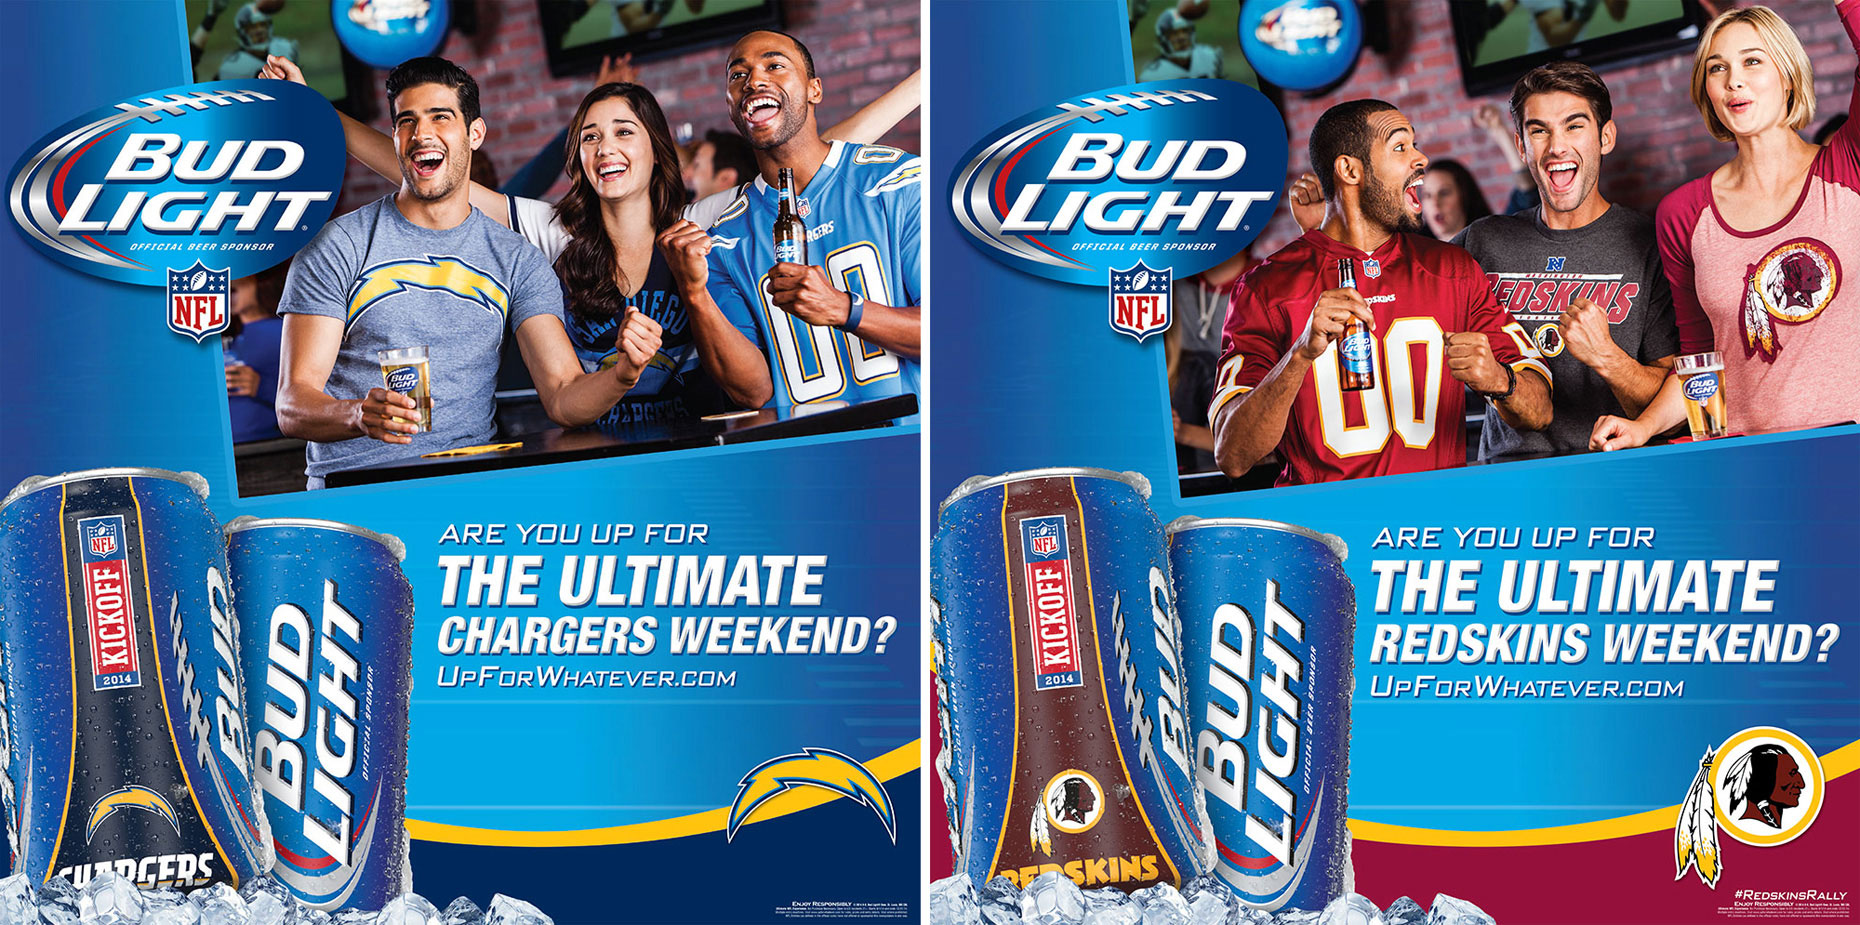 BudLight_TM_1